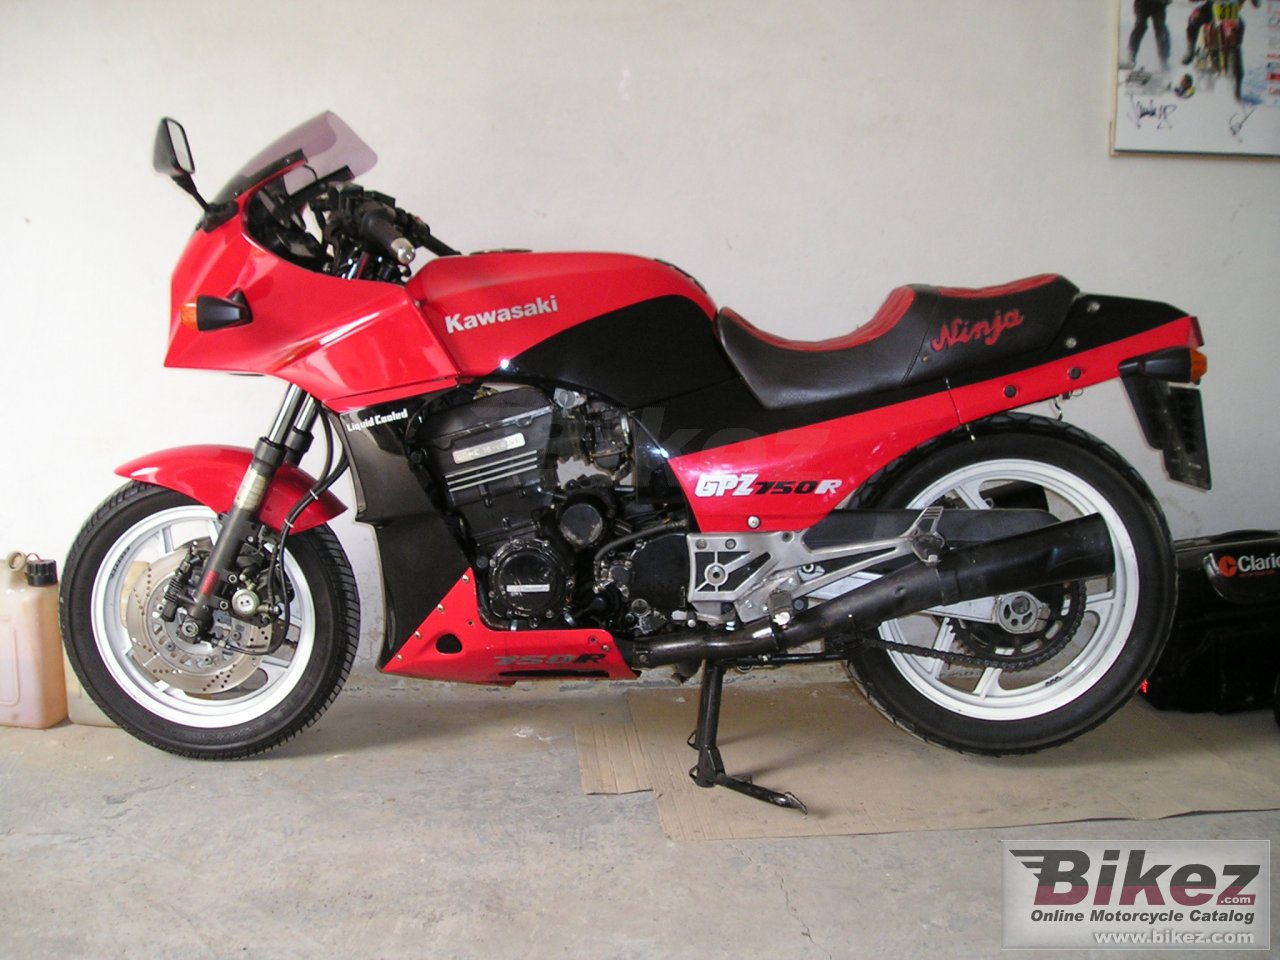 Big  gpz 750 r picture and wallpaper from Bikez.com